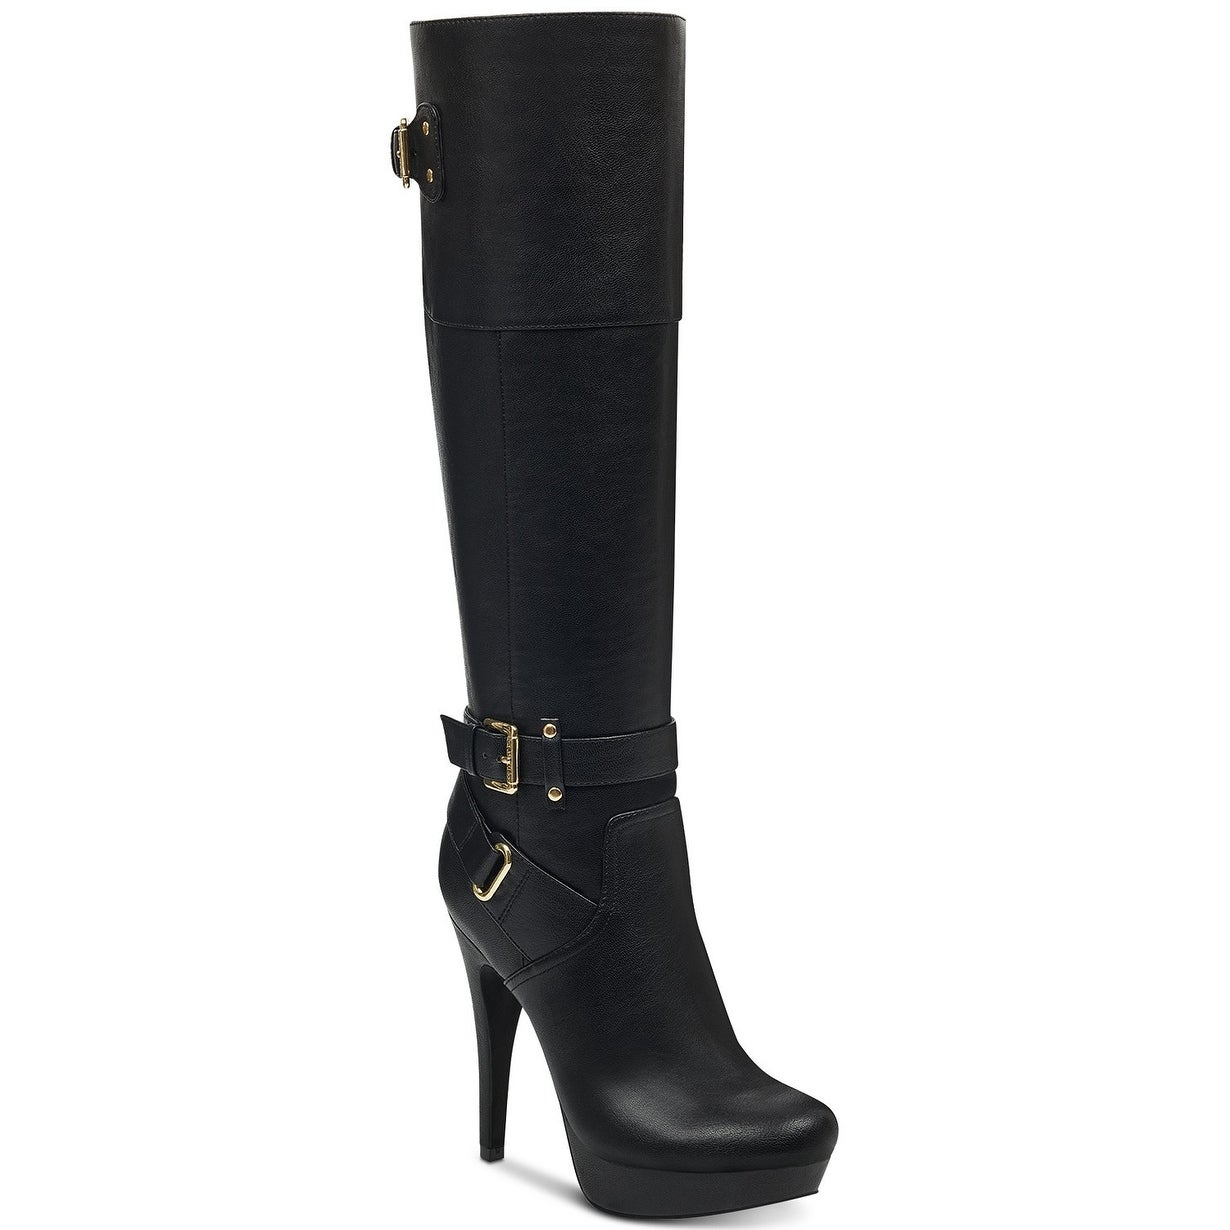 f19be15f61 Buy Guess Women's Boots Online at Overstock   Our Best Women's Shoes Deals